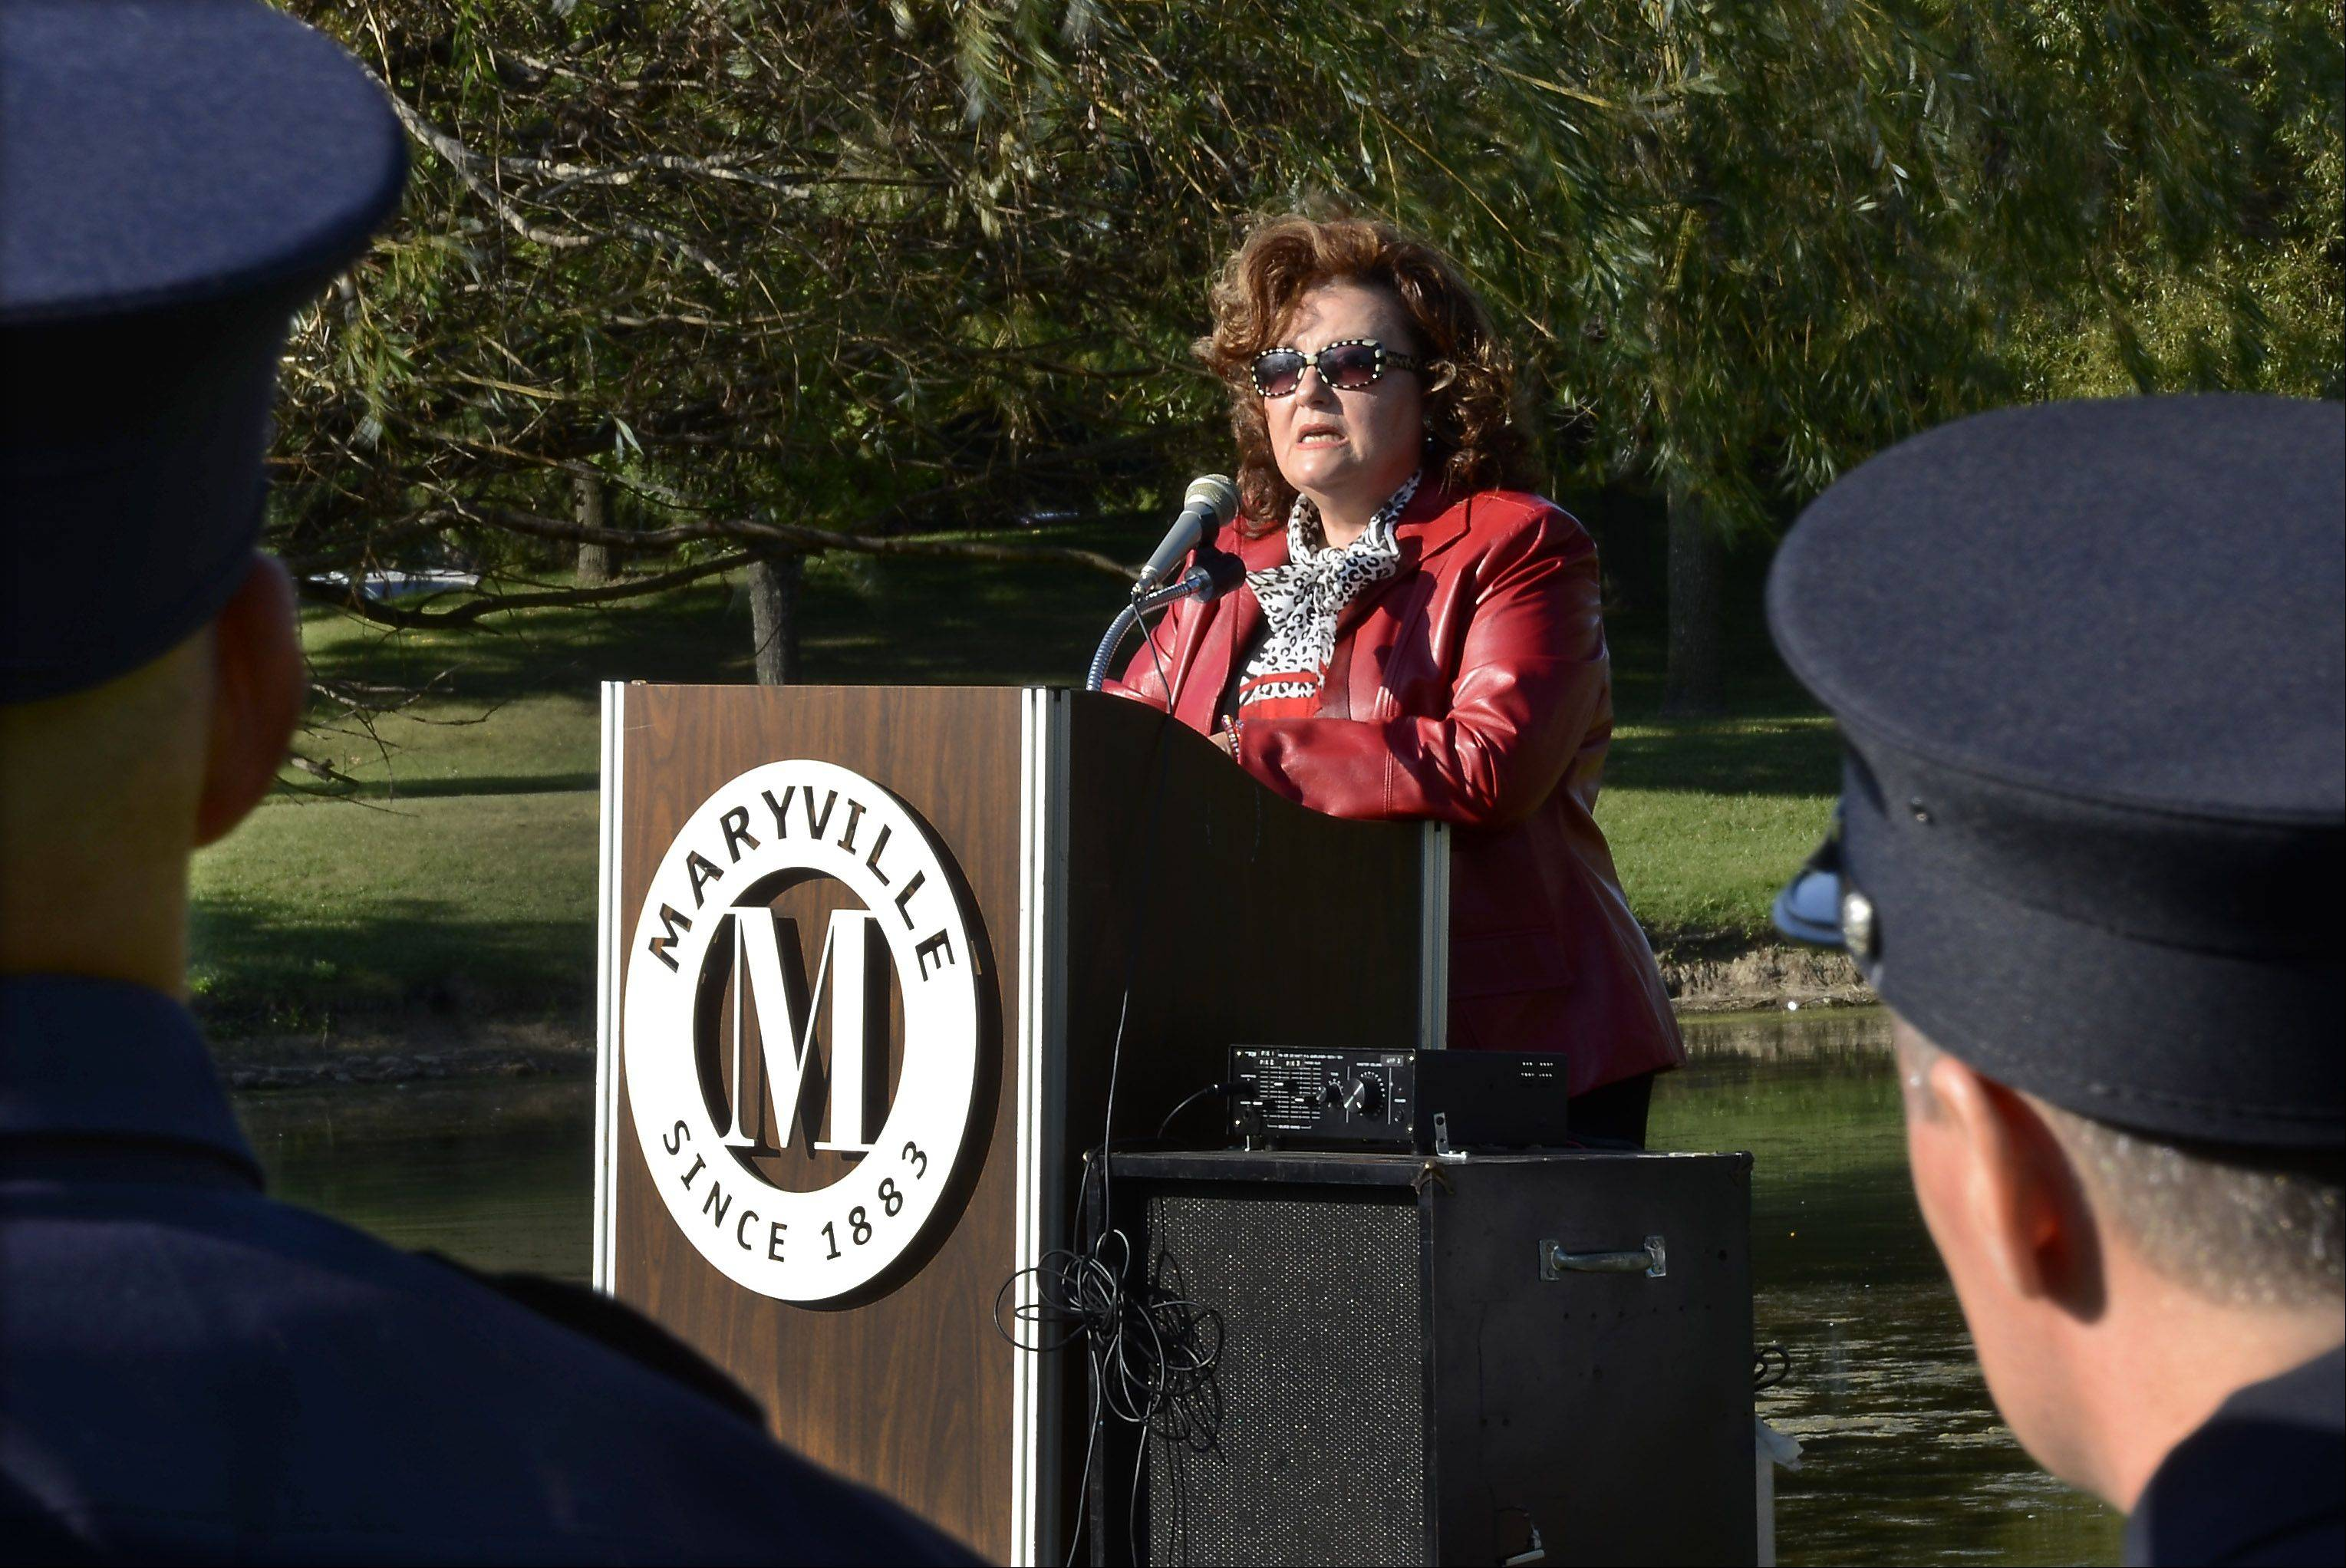 Firefighters listen as former Palatine Mayor Rita Mullins recalls landing in Washington, D.C. moments after the Pentagon had been hit by a passenger jet, killing all on board and 125 military personnel on Sept. 11, 2001. She spoke during a 9/11 Patriot Day ceremony at Maryville Academy in Des Plaines.